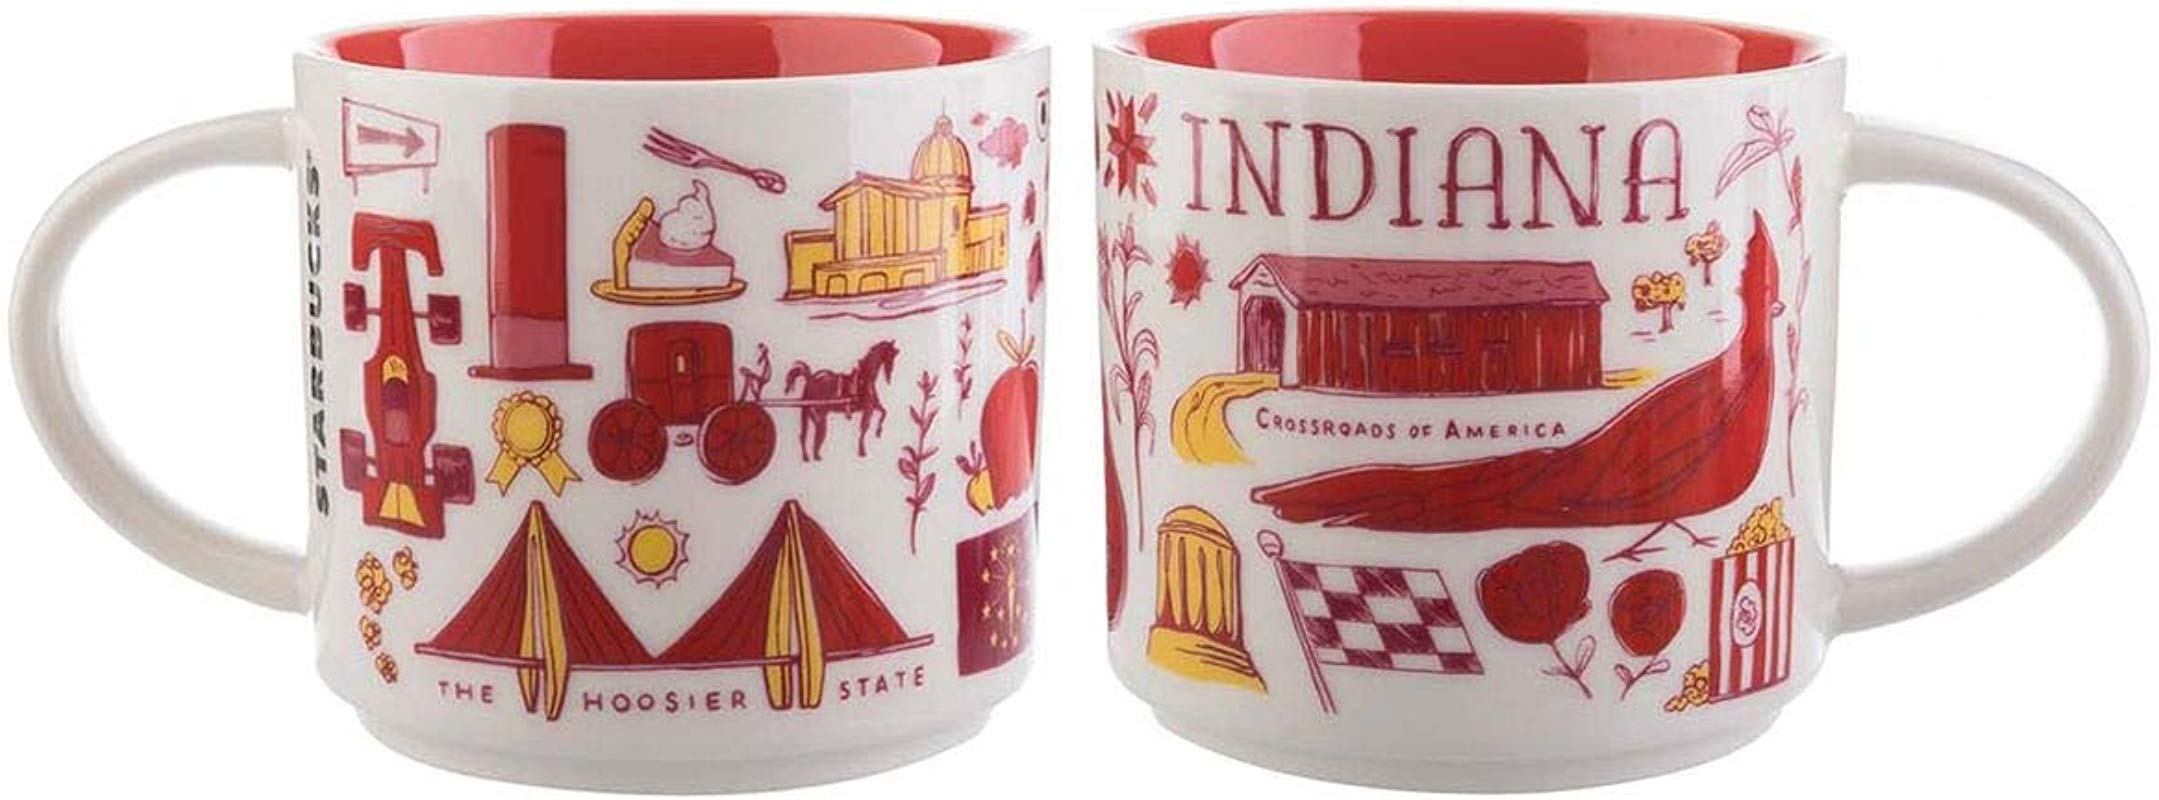 Starbucks Indiana Mug Been There Series Across The Globe Collection